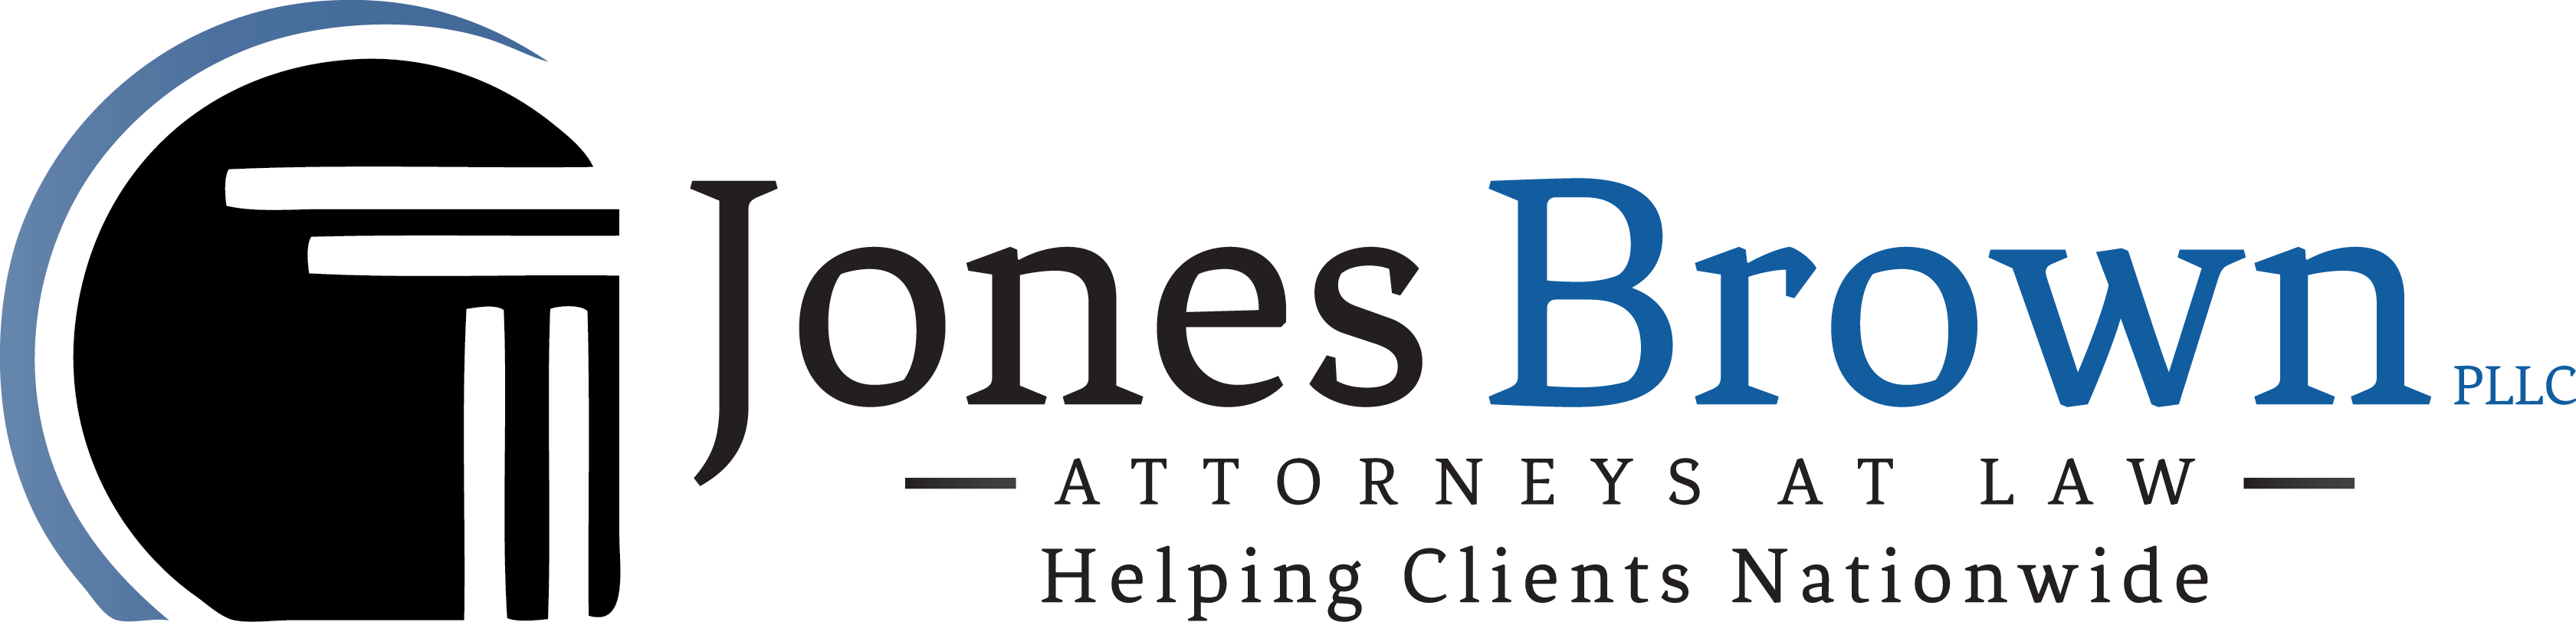 Jones Brown Logo